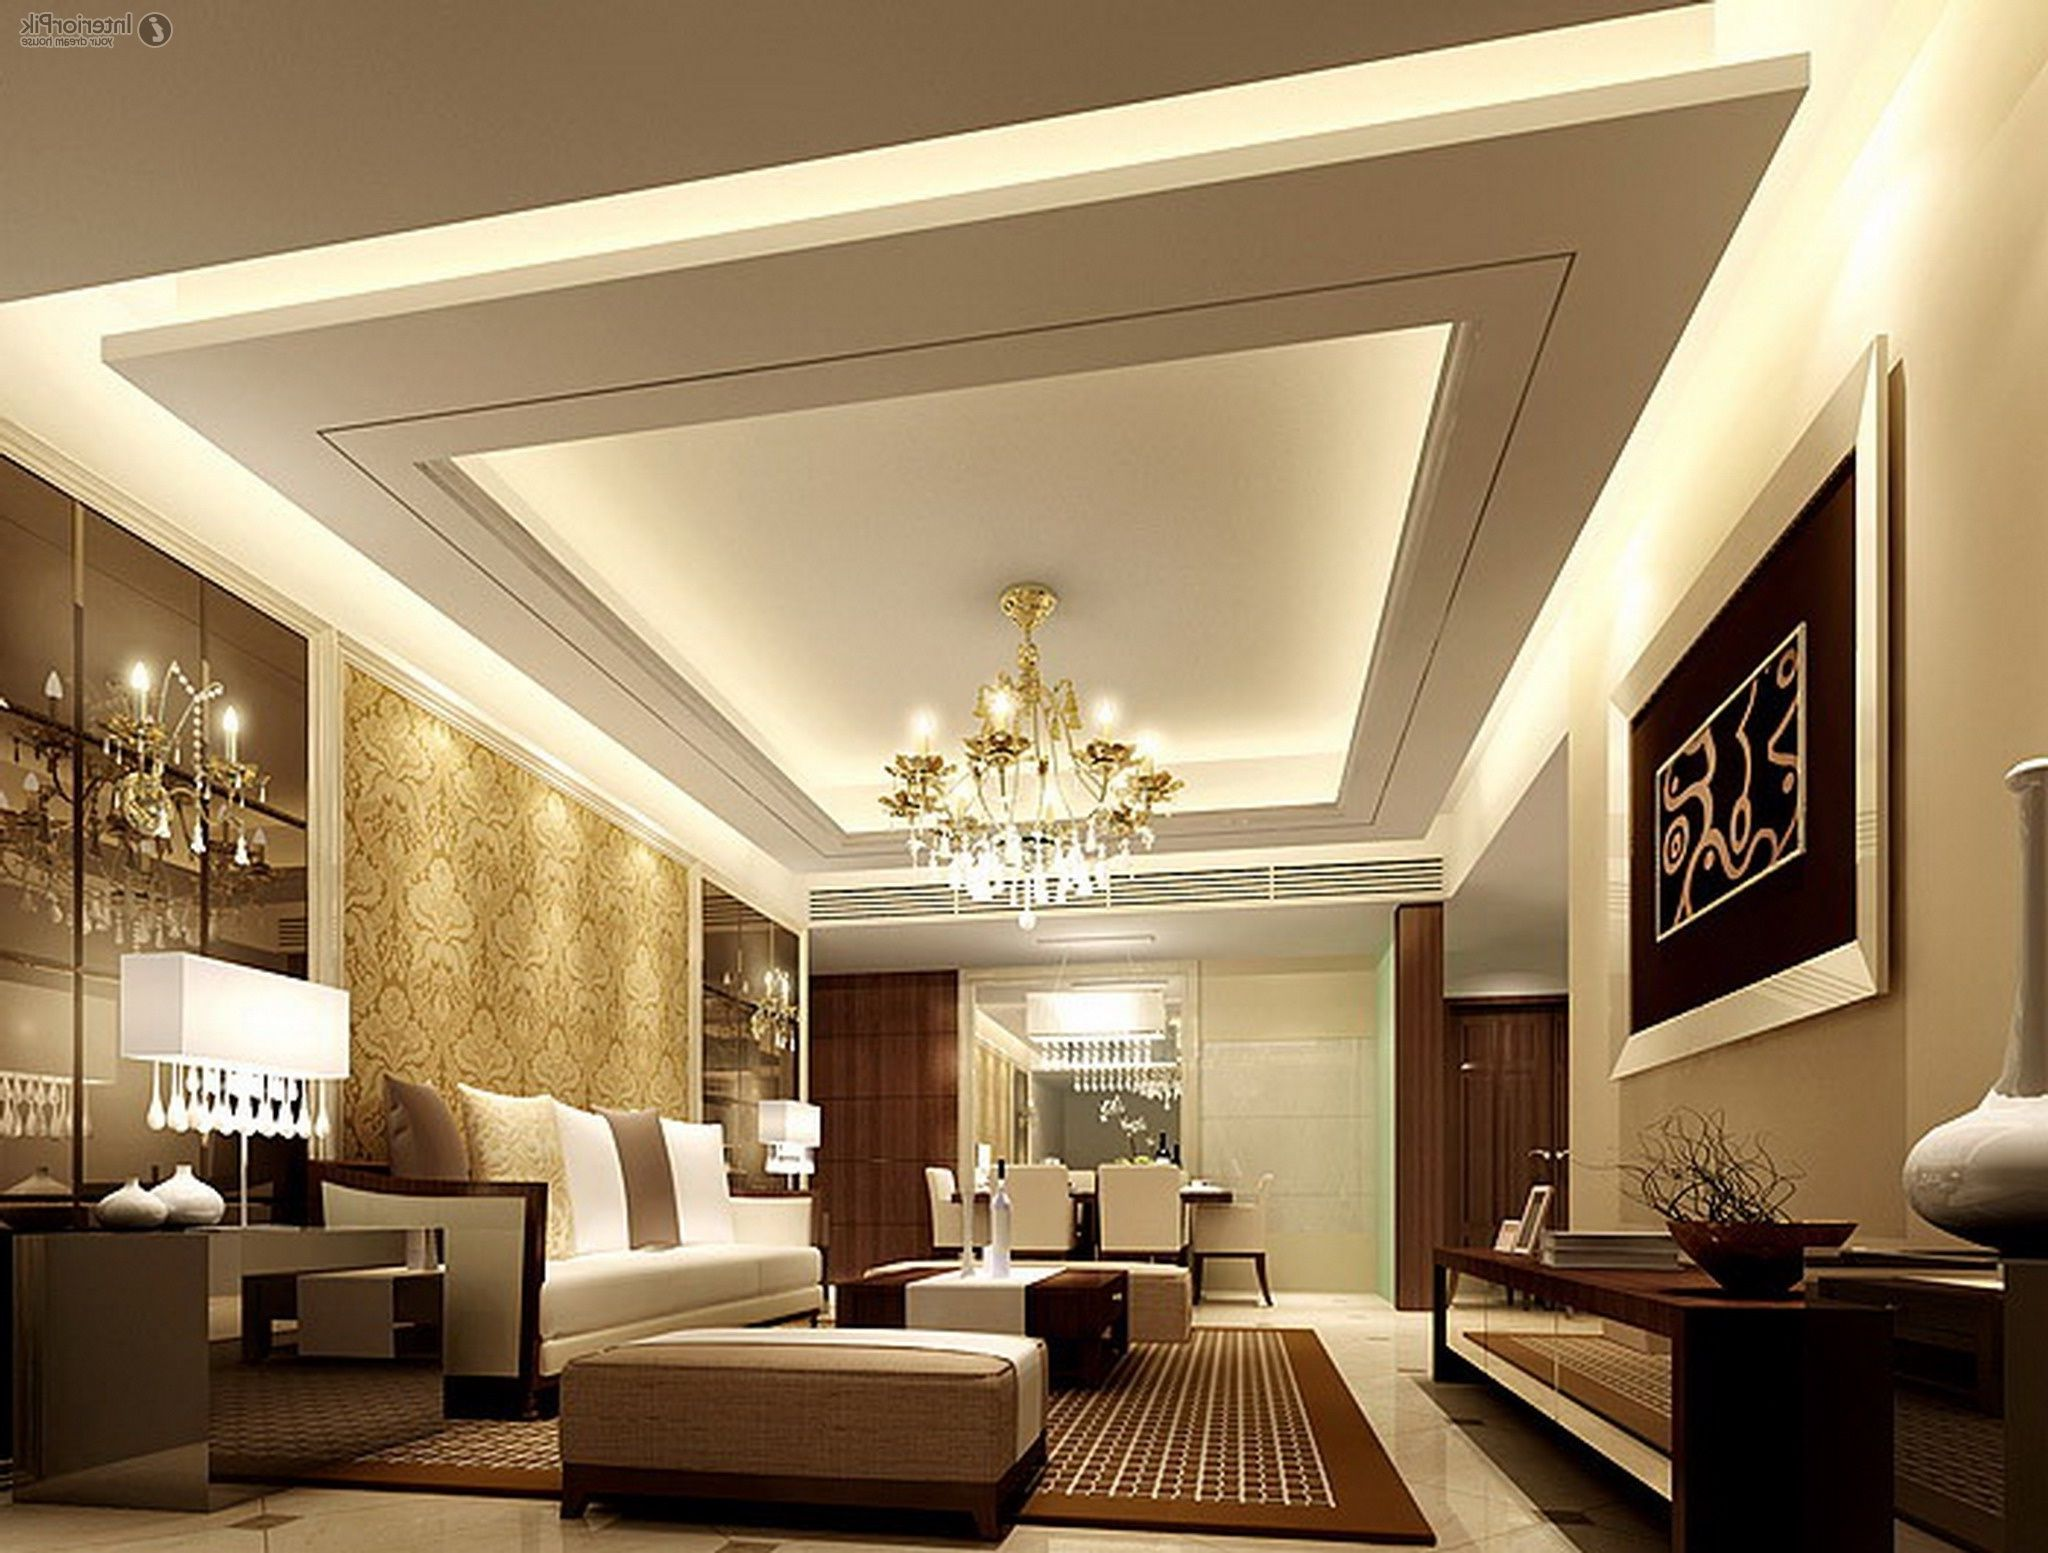 Ceiling Designs For Your Living Room Decor Around The World Ceiling Design Living Room Simple False Ceiling Design Bedroom False Ceiling Design